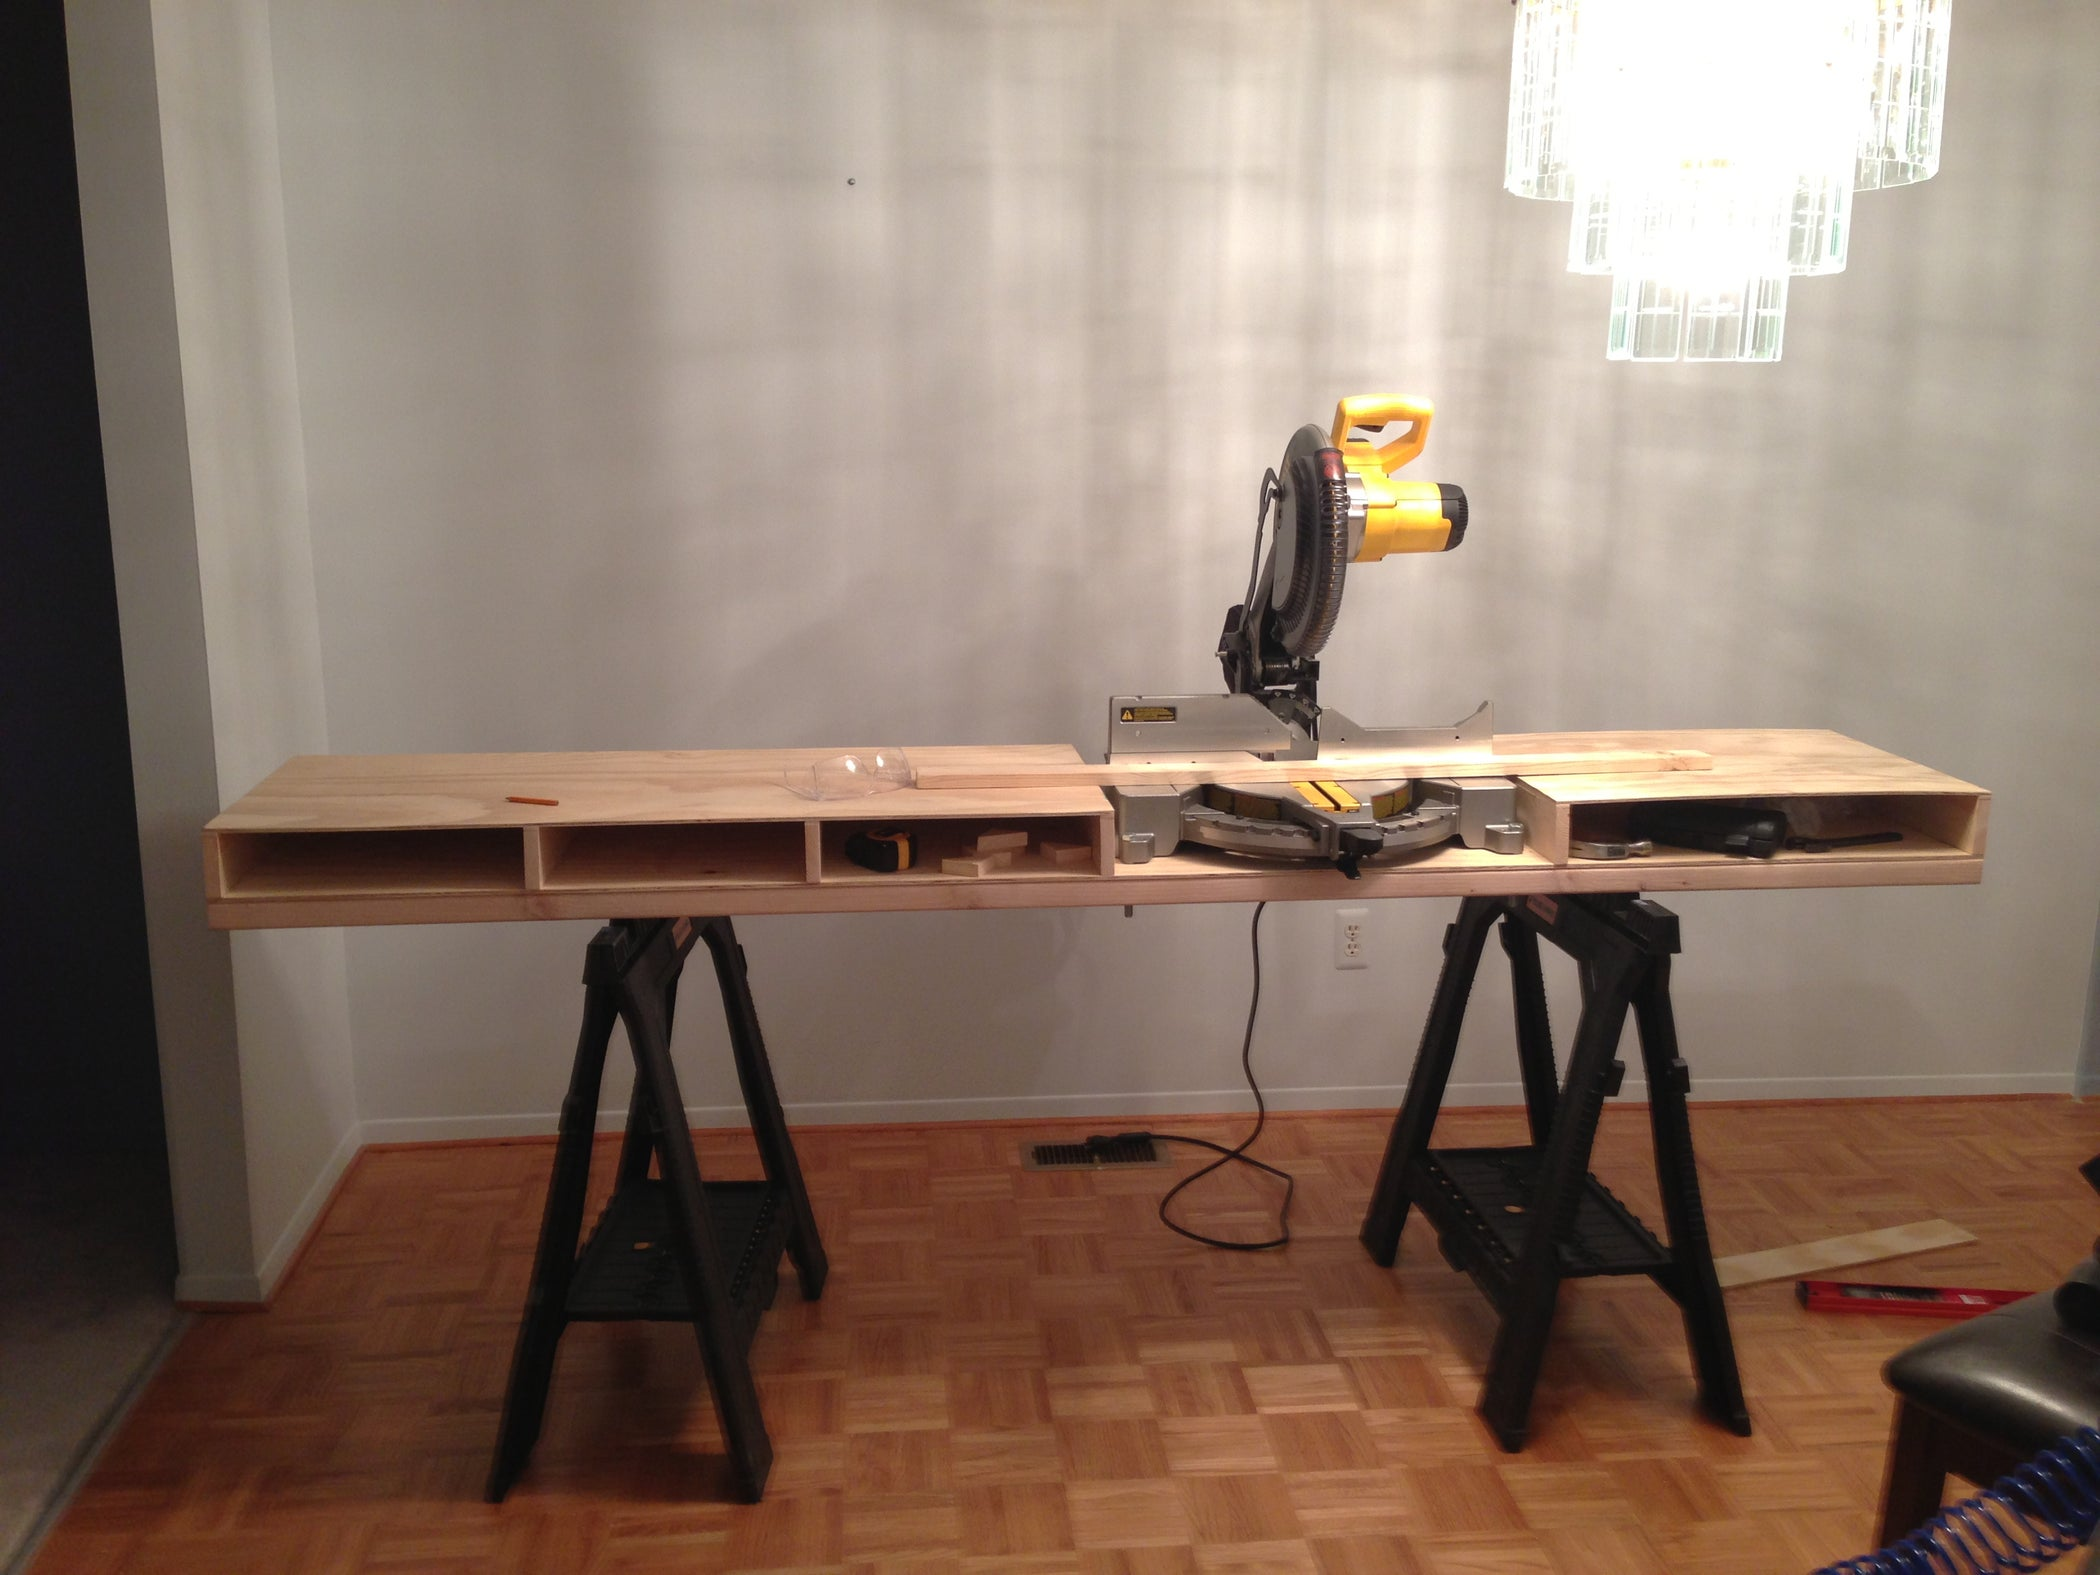 Build A Miter Saw Table I Made It At Techshop 4 Steps